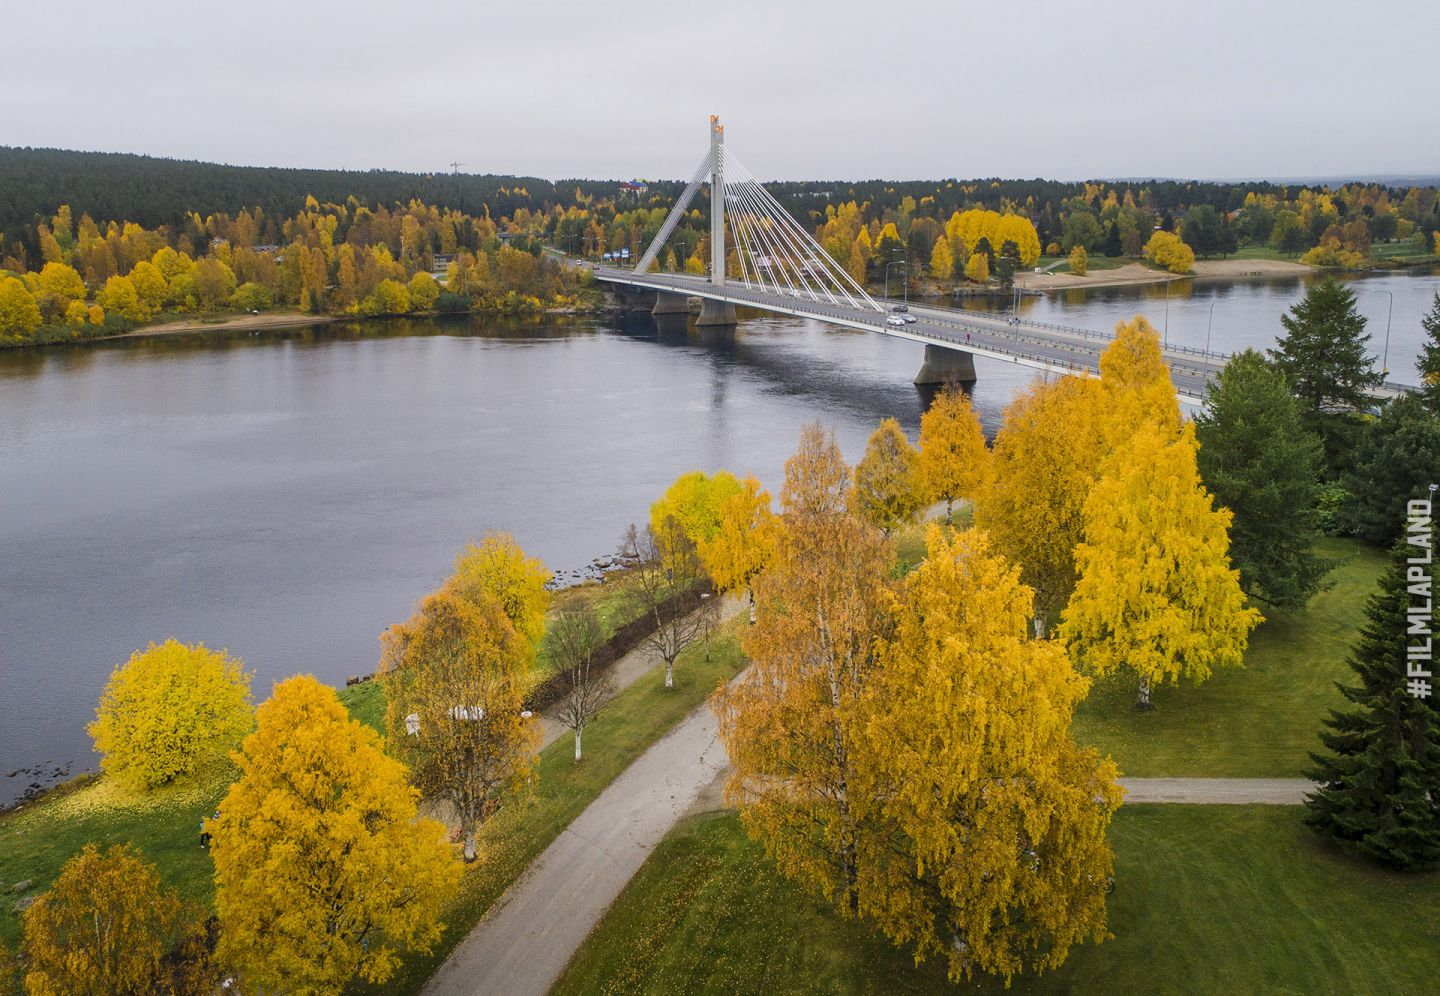 Lumberjack Candle Bridge in Rovaniemi, Finland in autumn